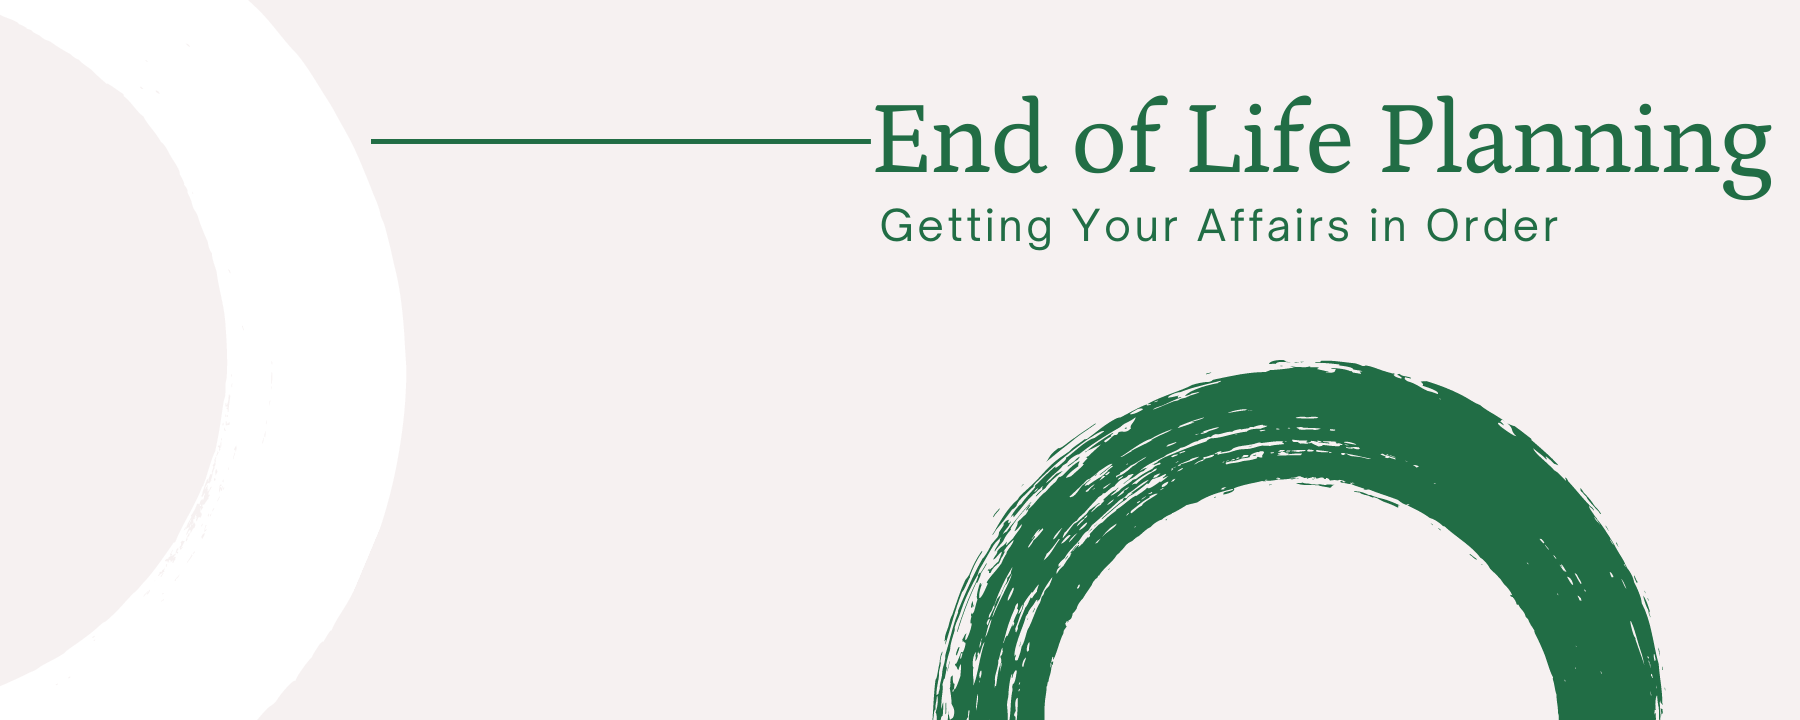 End of Life Planning: Getting Your Affairs in Order